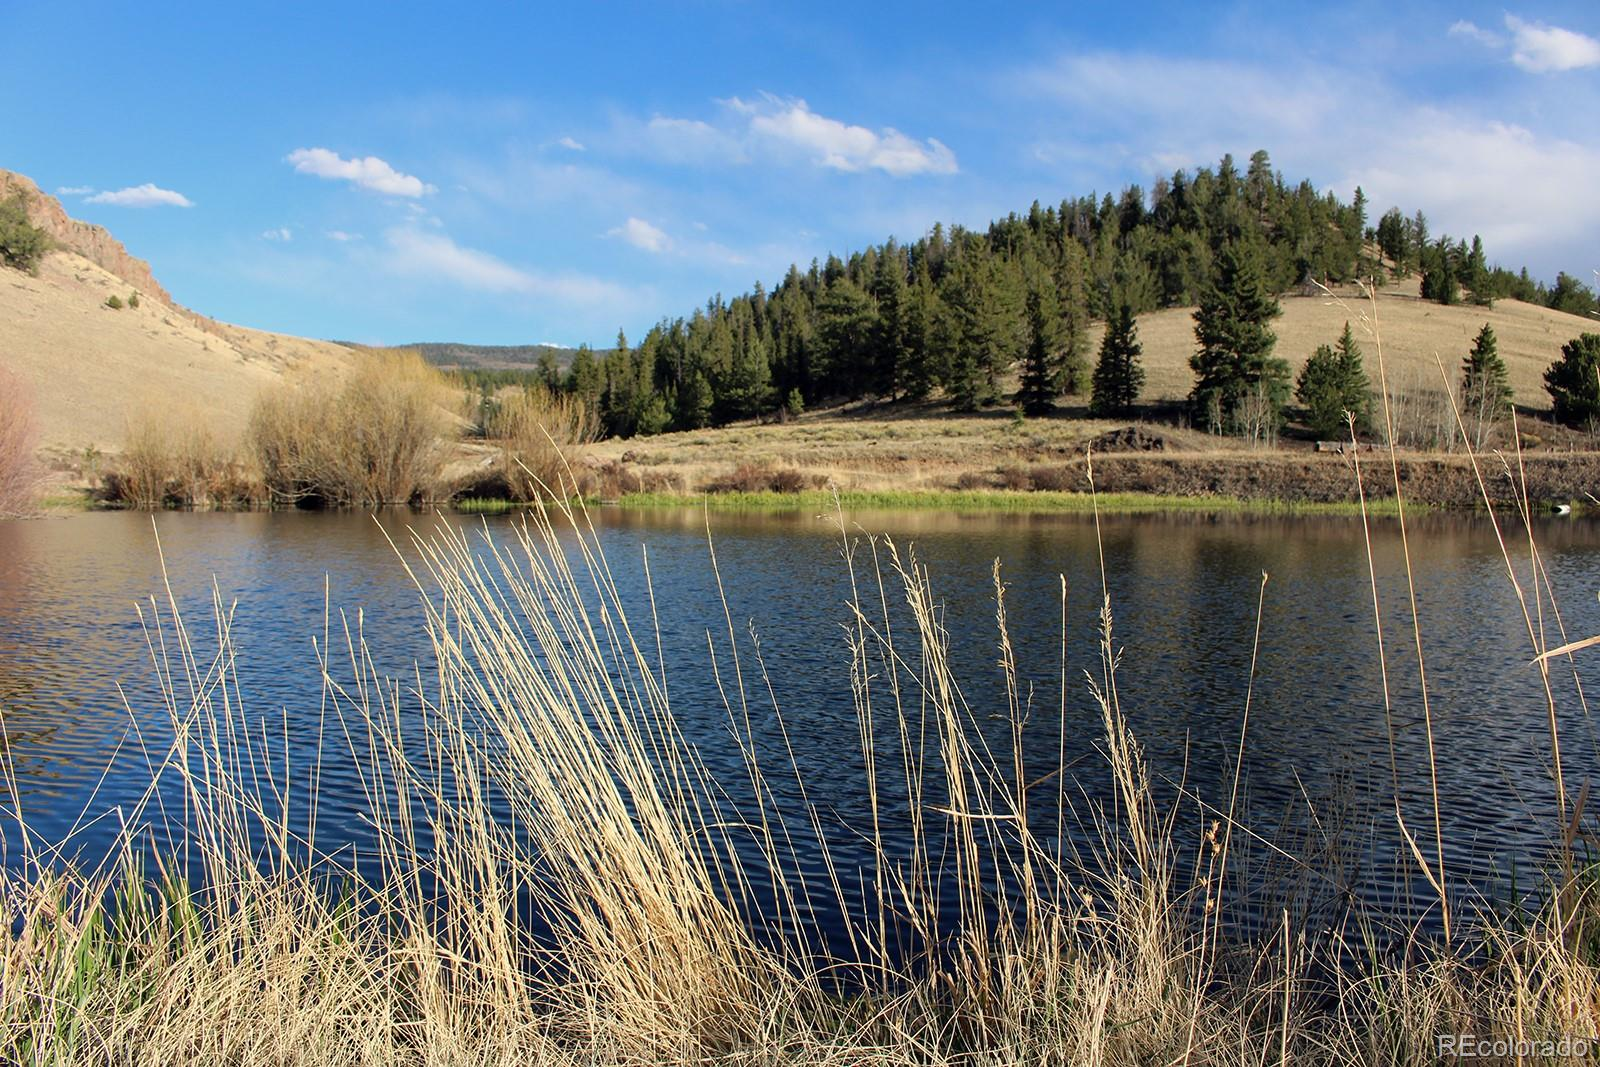 Surrounded by BLM and Forest Service, this 160 acre getaway mountain property is located just west of Saguache and just 1 hour from the Gunnison Airport. Deeded water rights, year round stream, 4 ponds, and a hand-built cabin certify this as a rare gem in the Colorado market. Currently used as a horse/hunting property with portable loafing pens, round training pen and arena space already in place. The unique trail system through the property allows access for hiking, mountain biking, horse riding and four wheeling through rocky cliffs, open grasslands, ponderosa forests and bird filled wetlands. Ruins from the original homesteader cabin provide a glimpse into the history of this abundant land and show that the new cabin is situated perfectly, protected by stunning canyon walls and rocky outcroppings, while still providing an open view in three directions. The well built cabin can sleep 4 comfortably with a clear view of the ponds from the front porch. The cabin is well insulated and appointed with solar panels, generator and a 500 gallon propane tank, septic and domestic well. A well planned kitchen area and full bathroom with shower make this the perfect remote getaway property.  A camouflaged container on site is designed for storage of tools and vehicles for instant use.. Abundant with wildlife including elk, deer, turkey, bear, mountain lion, antelope and even an occasional moose. A remarkable and valuable opportunity for a discriminating buyer.